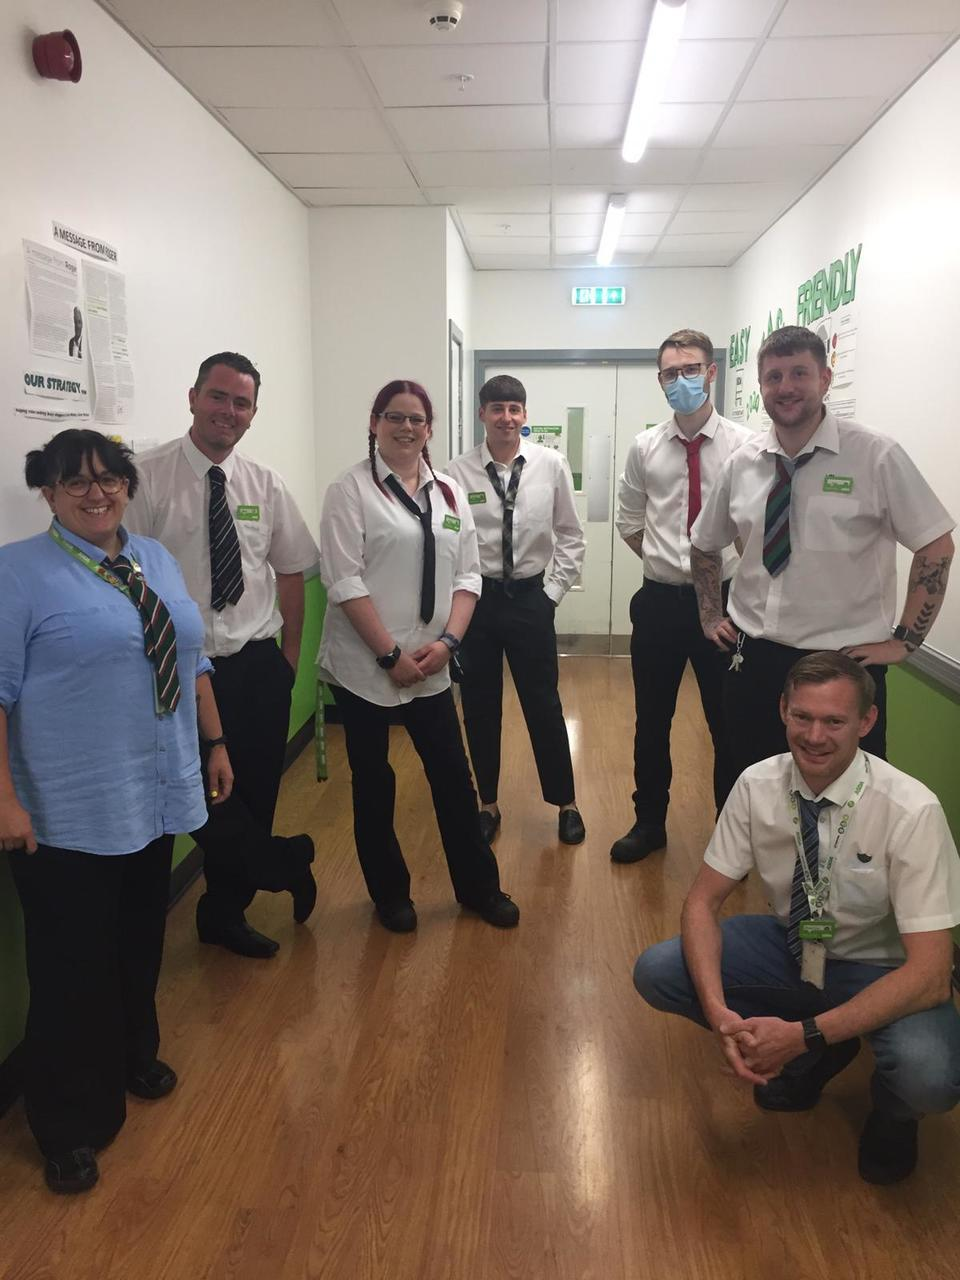 Perfect DayStaff at worcester store joining in on perfect day   Asda Worcester